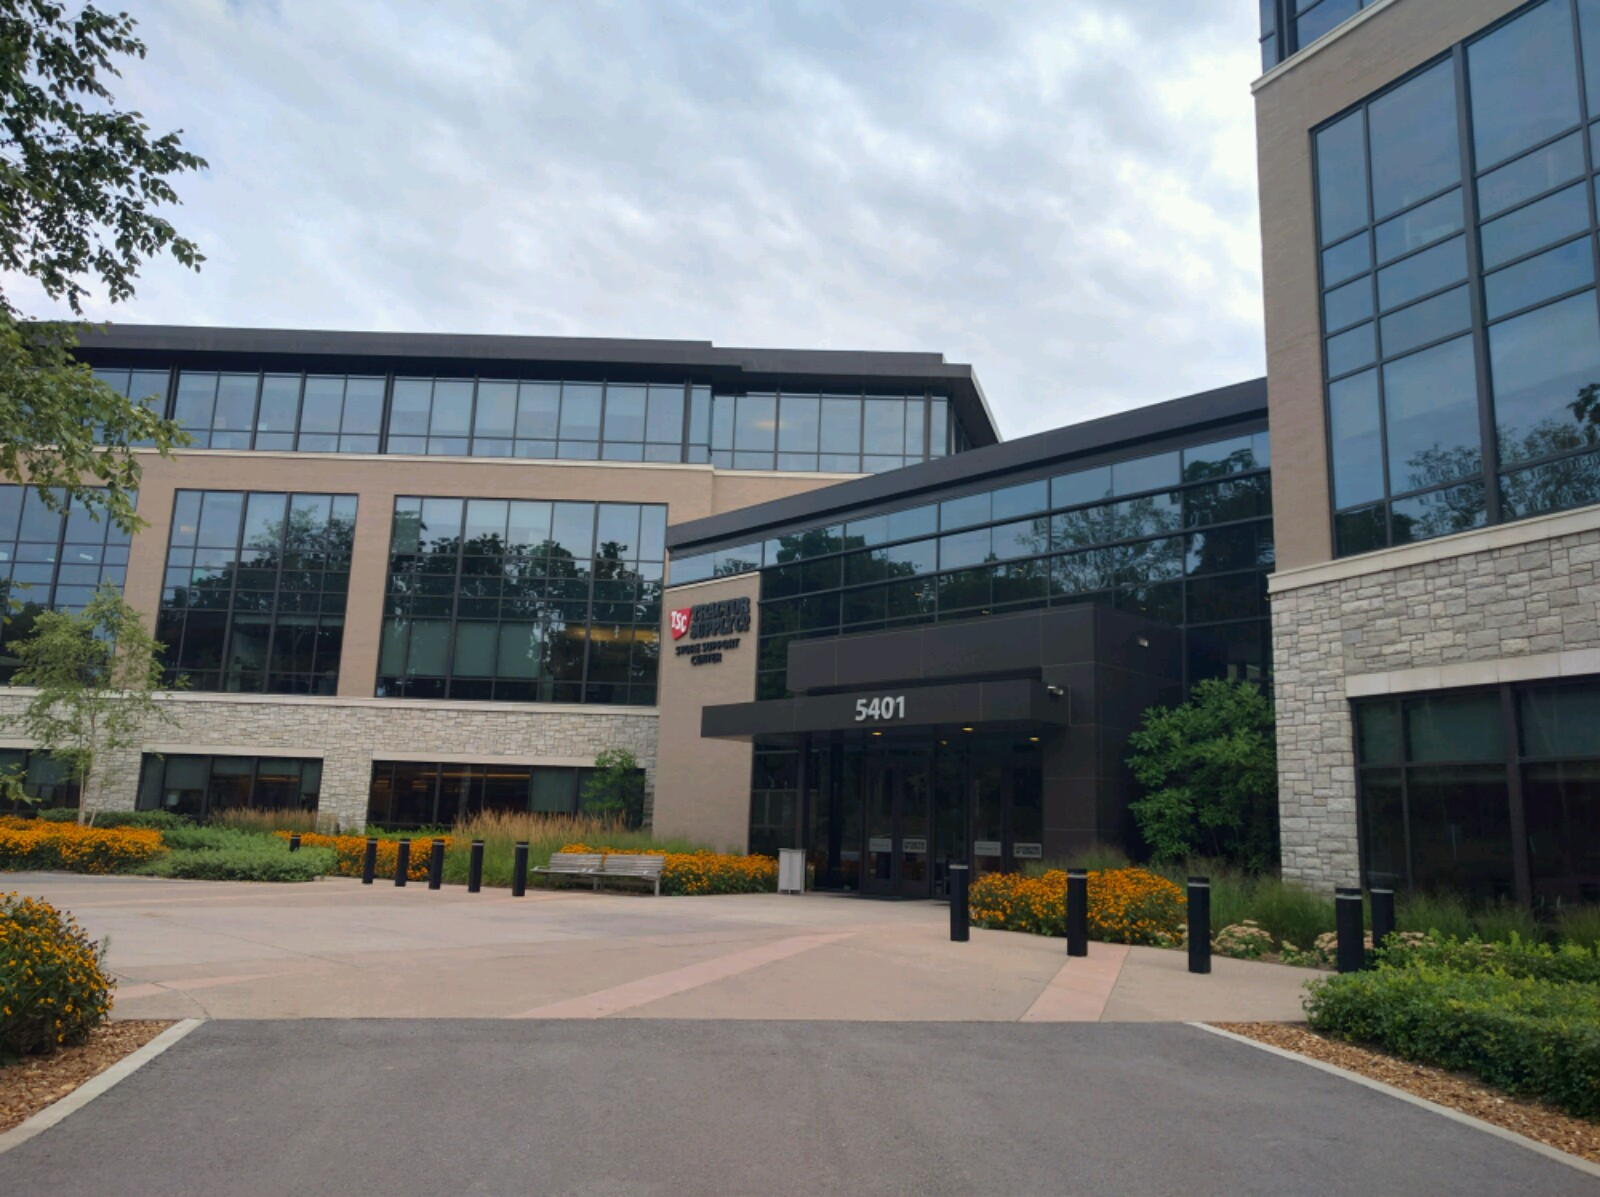 Tractor Supply's corporate headquarters in Brentwood, Tennessee.